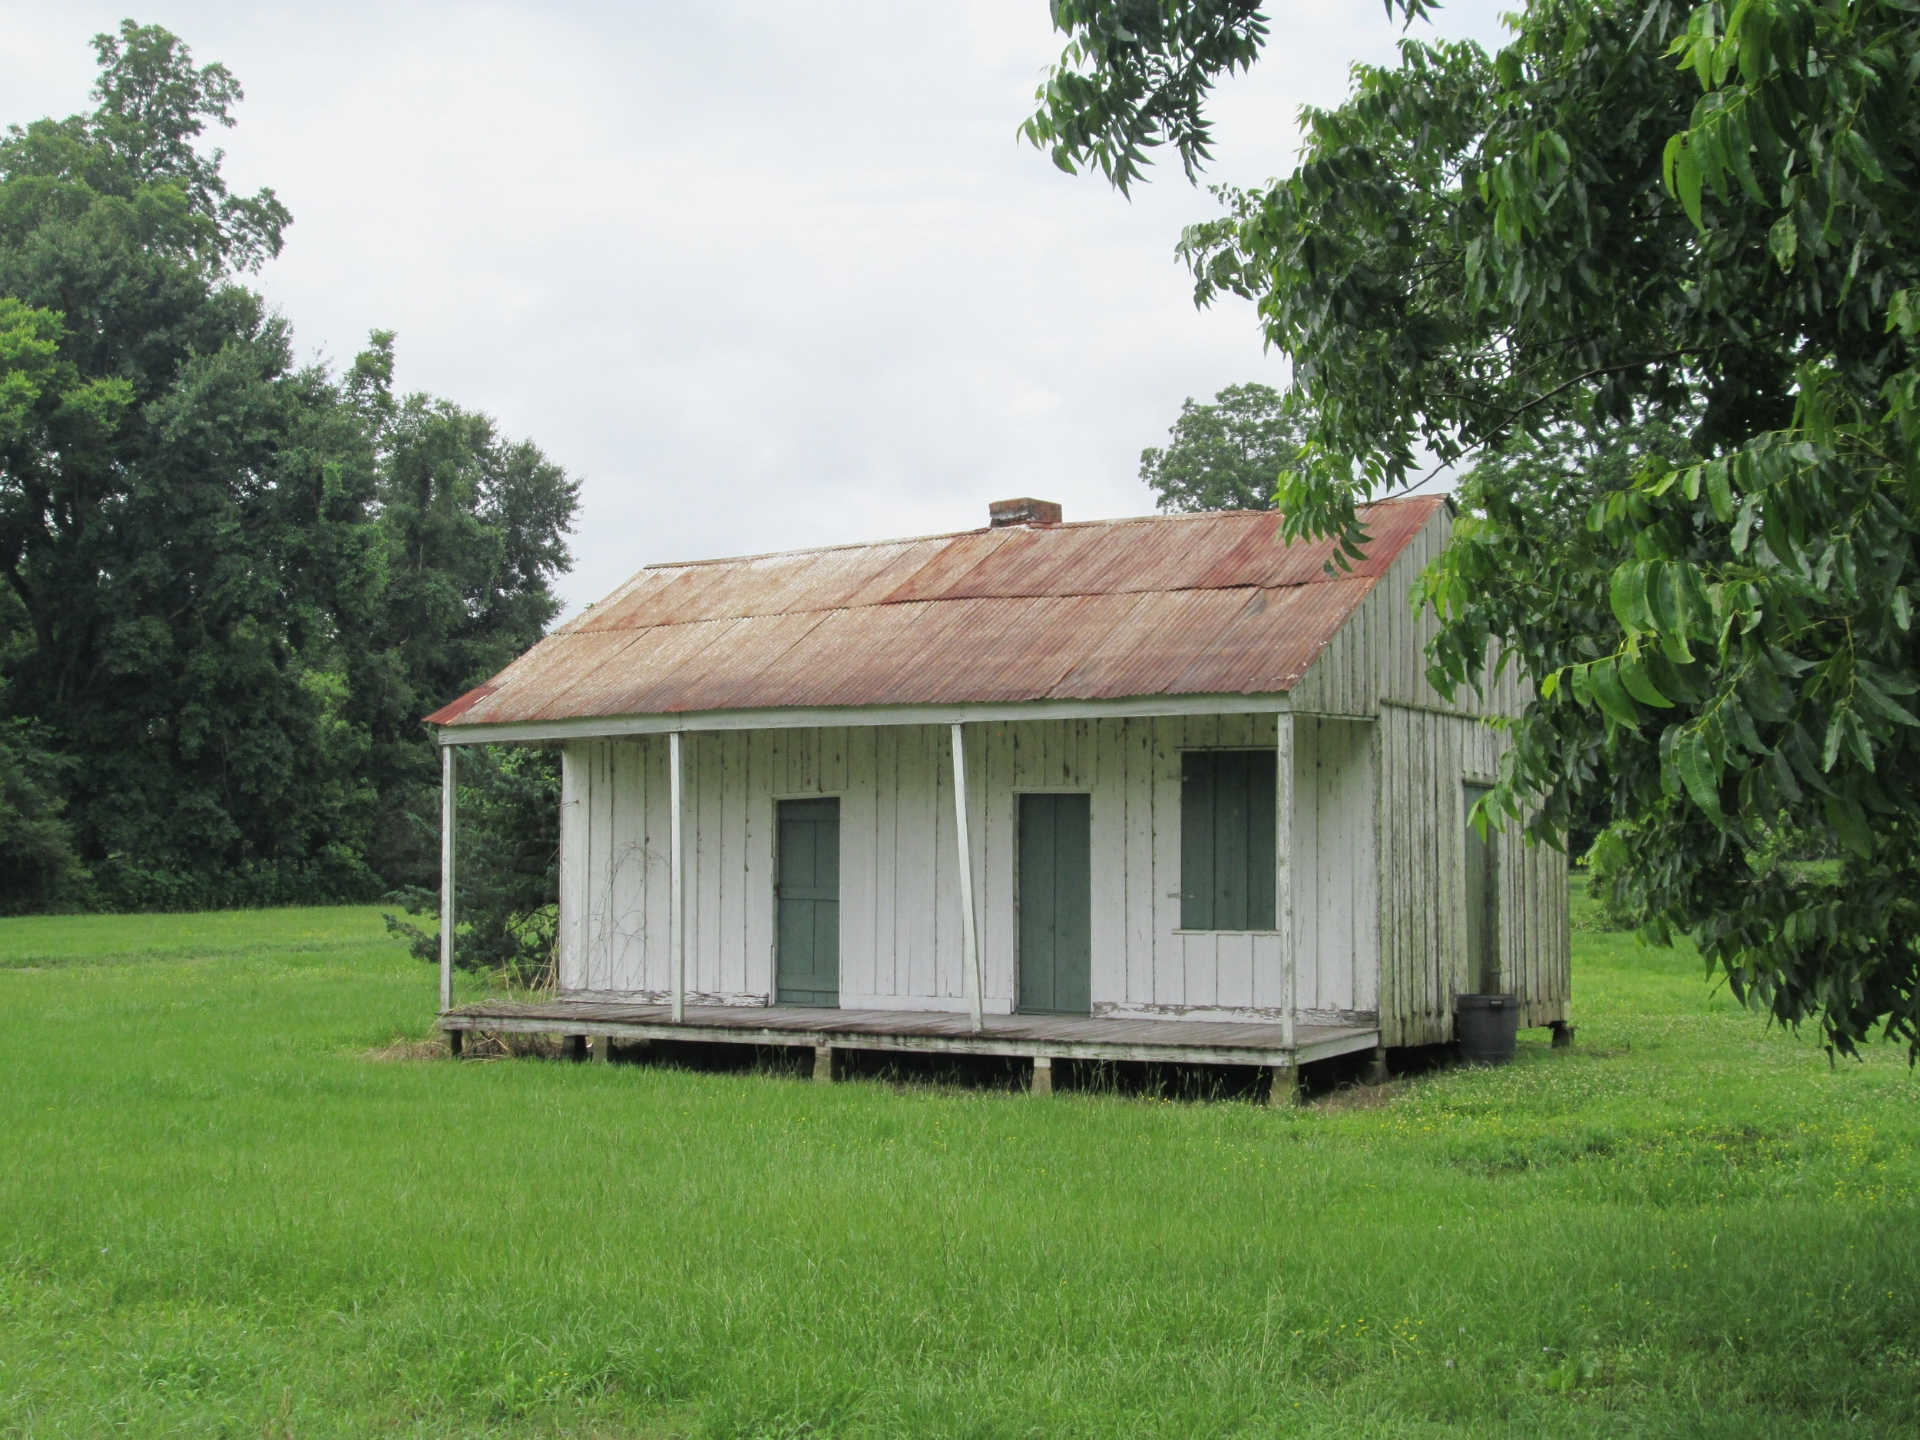 What a sharecropper's home might have looked like